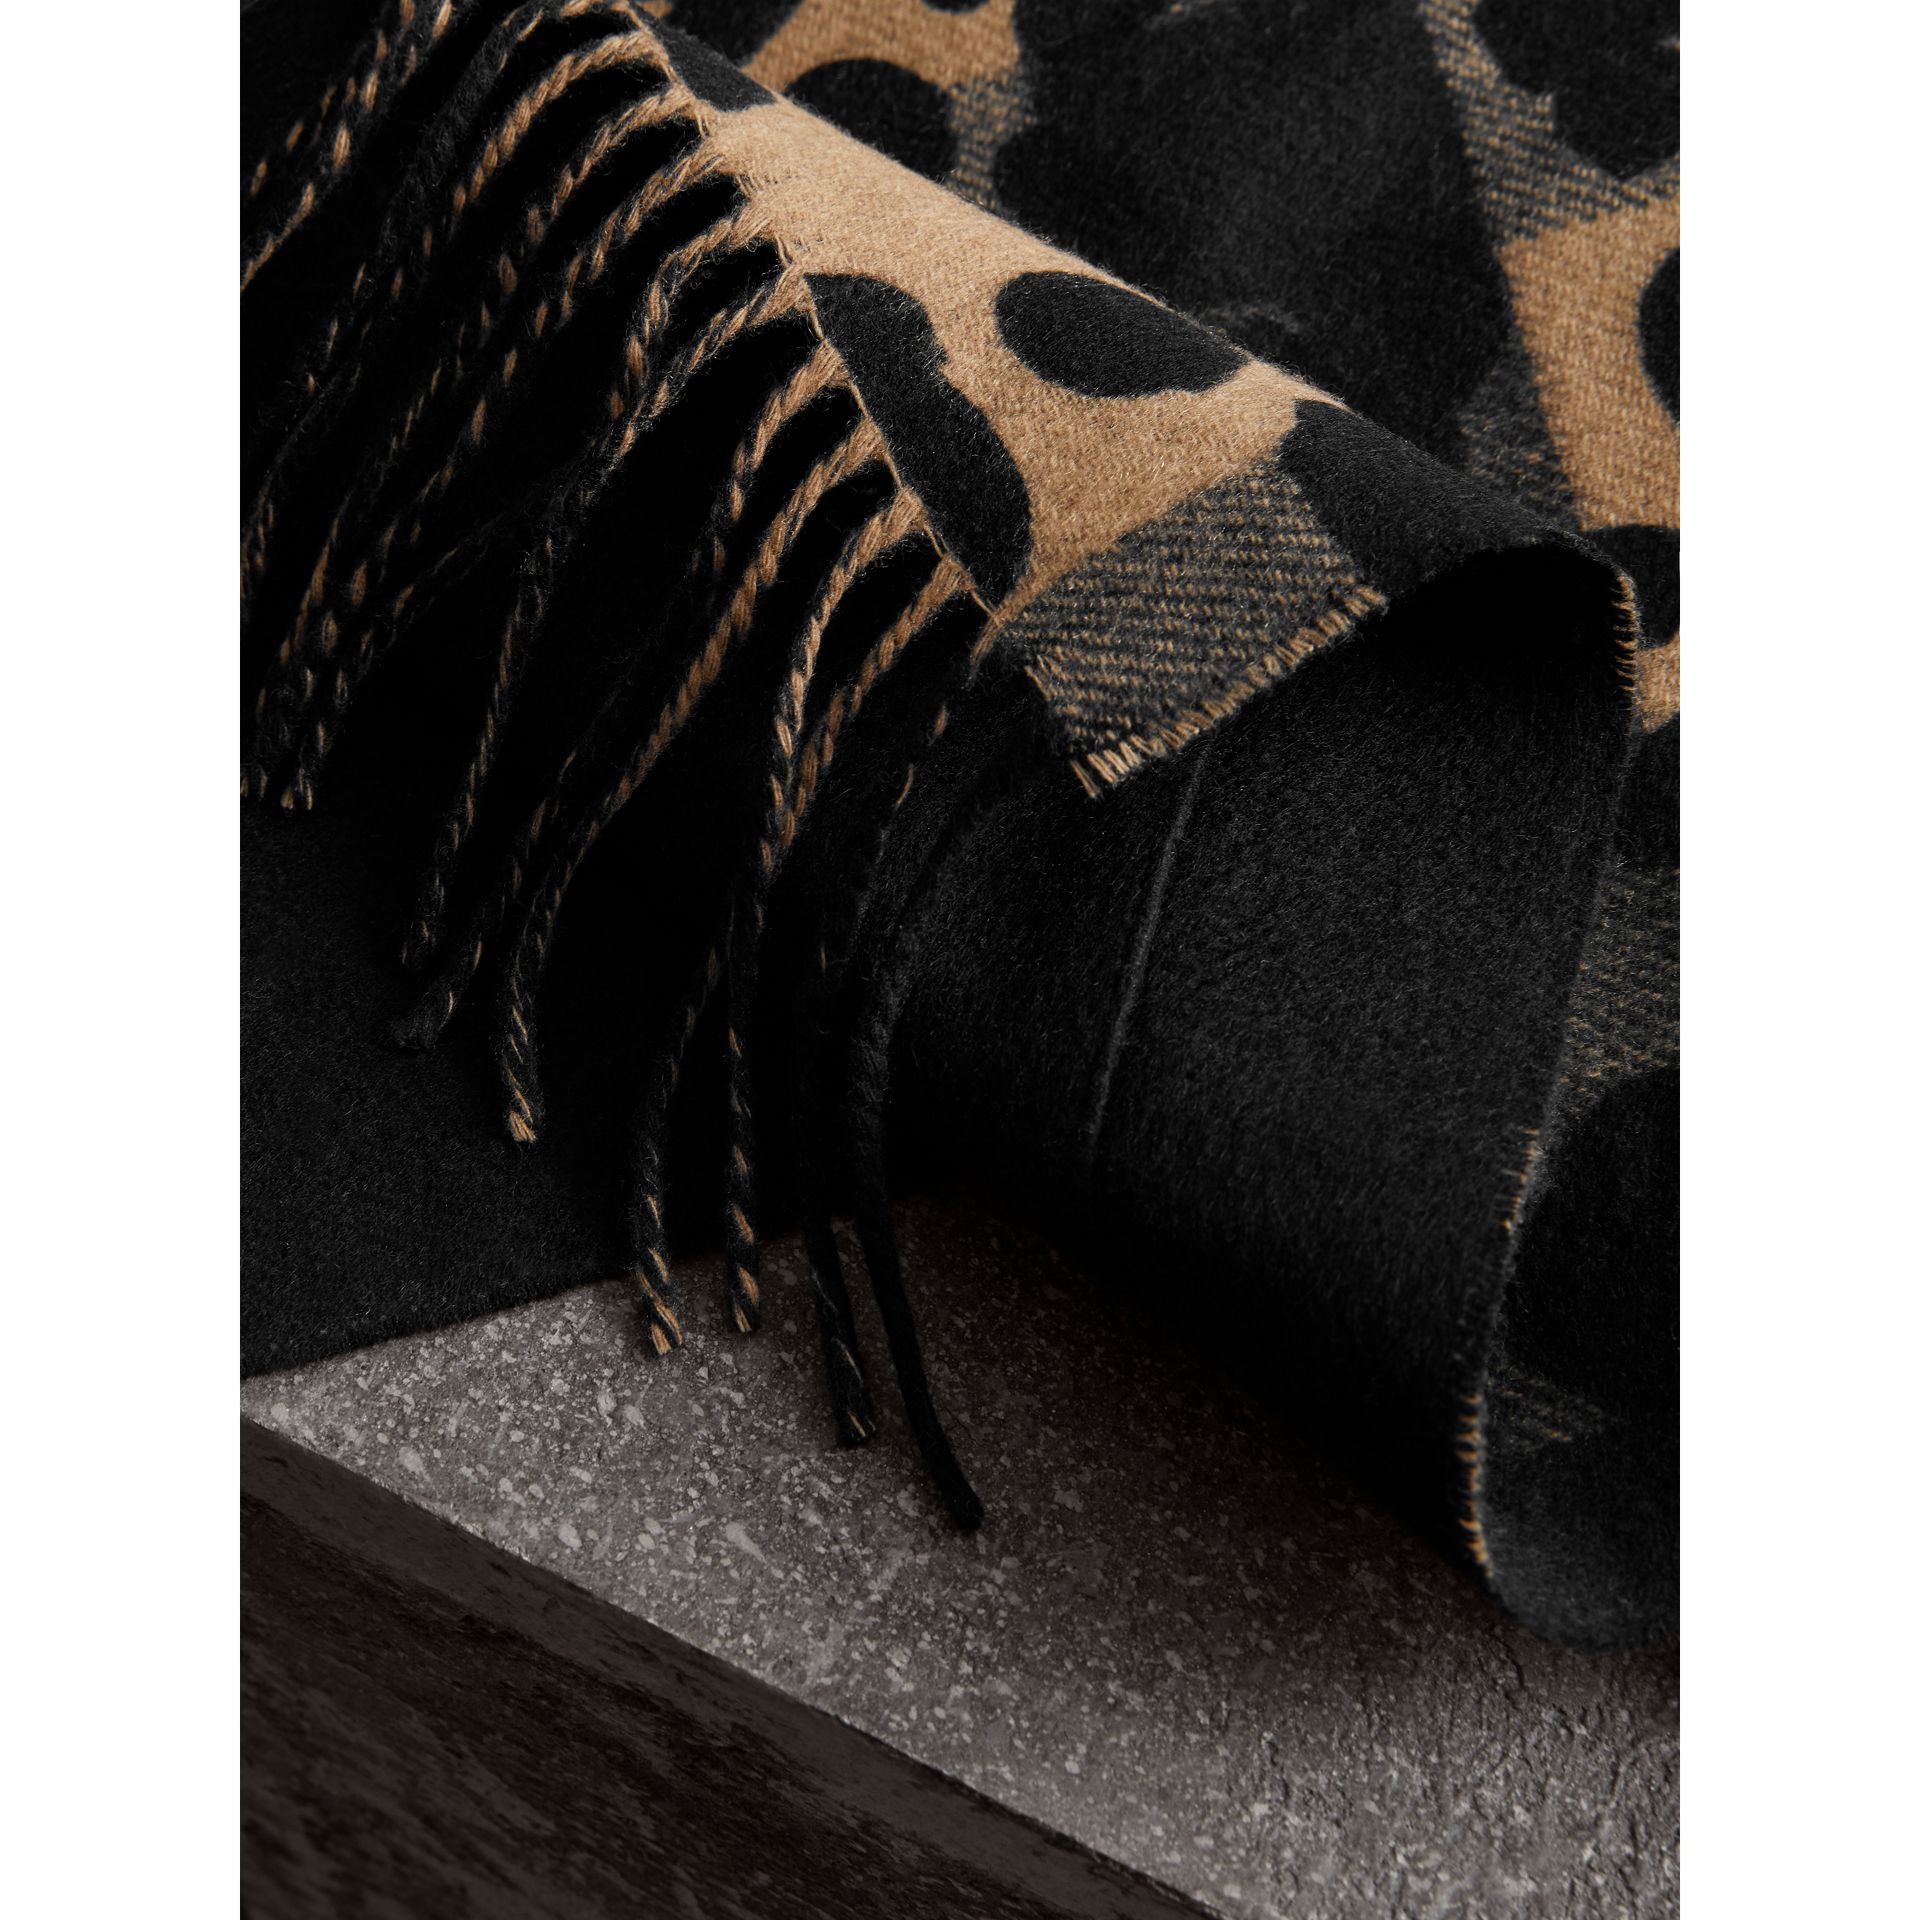 Animal Pattern Merino Wool Cashmere Stole in Camel - Women | Burberry Australia - gallery image 2